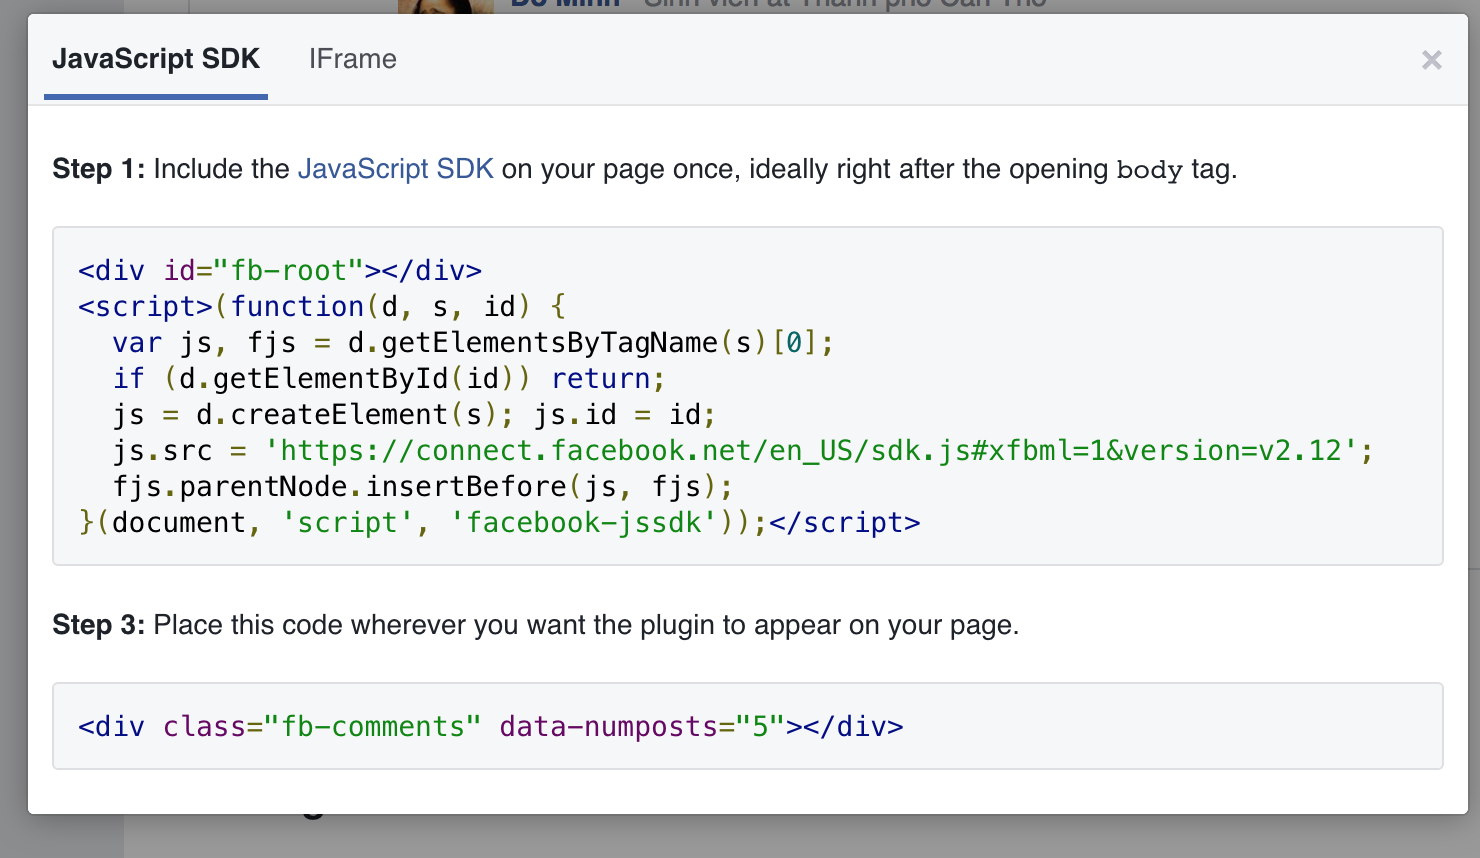 Facebook_code_with_no_URL.png